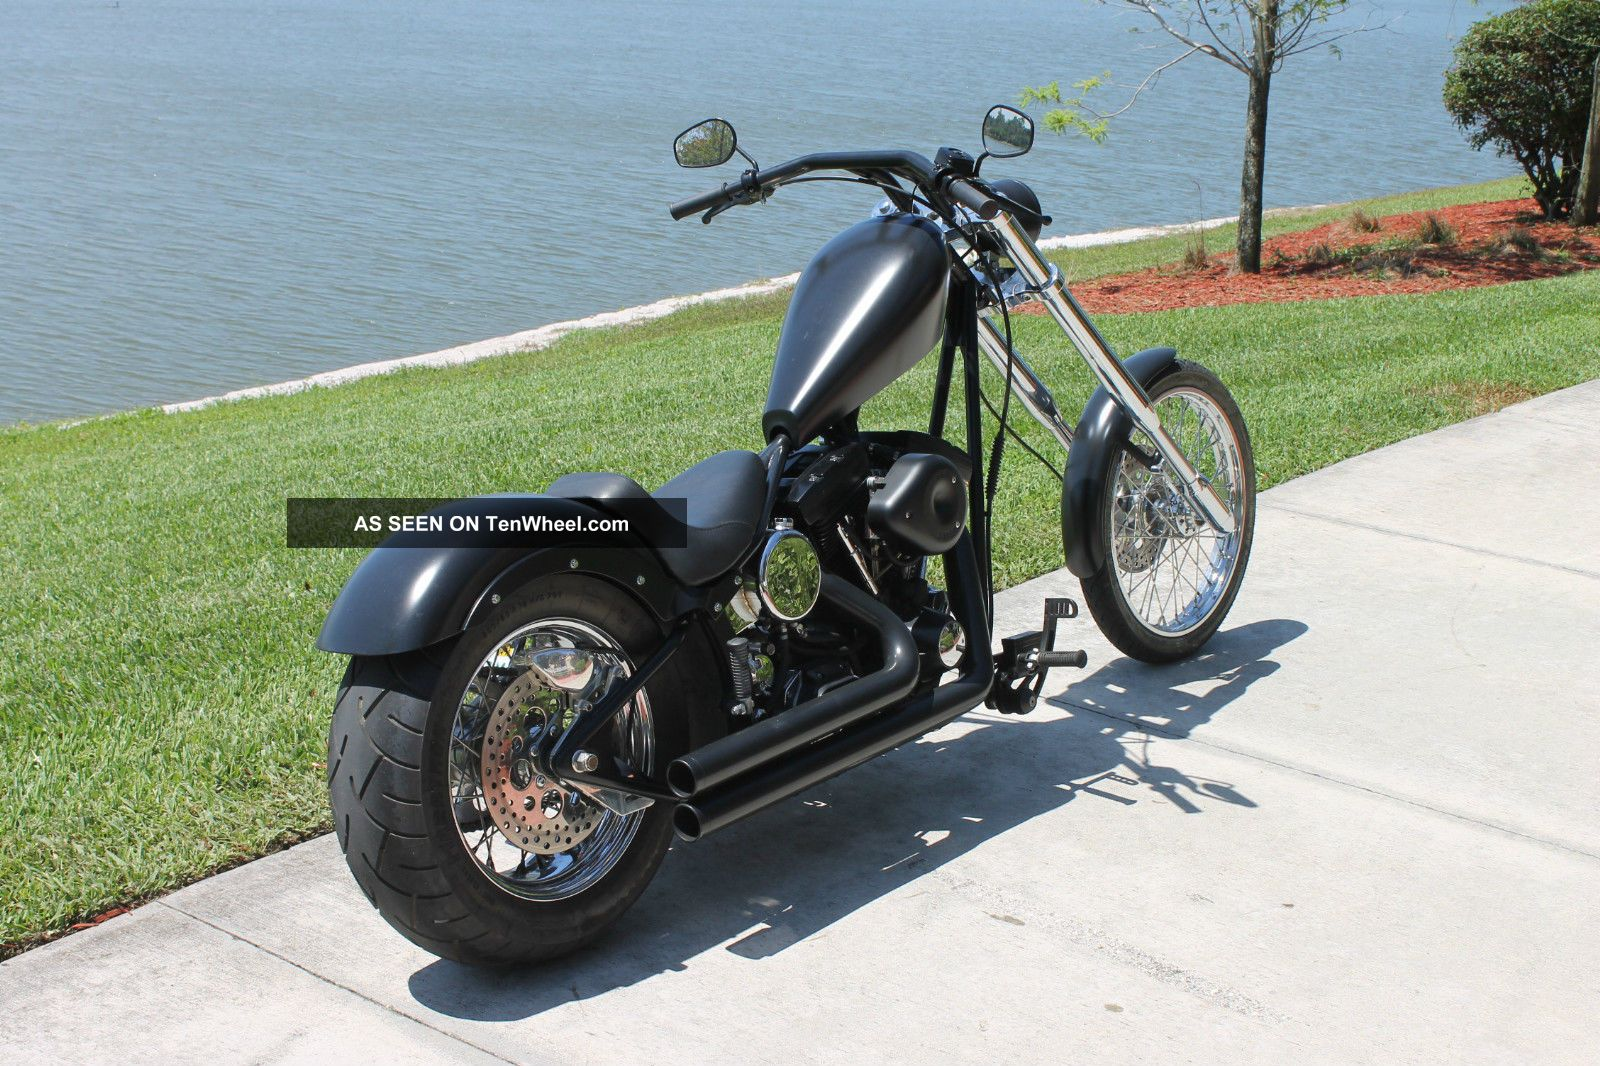 Custom 3 Wheel Chopper Motorcycles 1600 x 1066 · 360 kB · jpeg